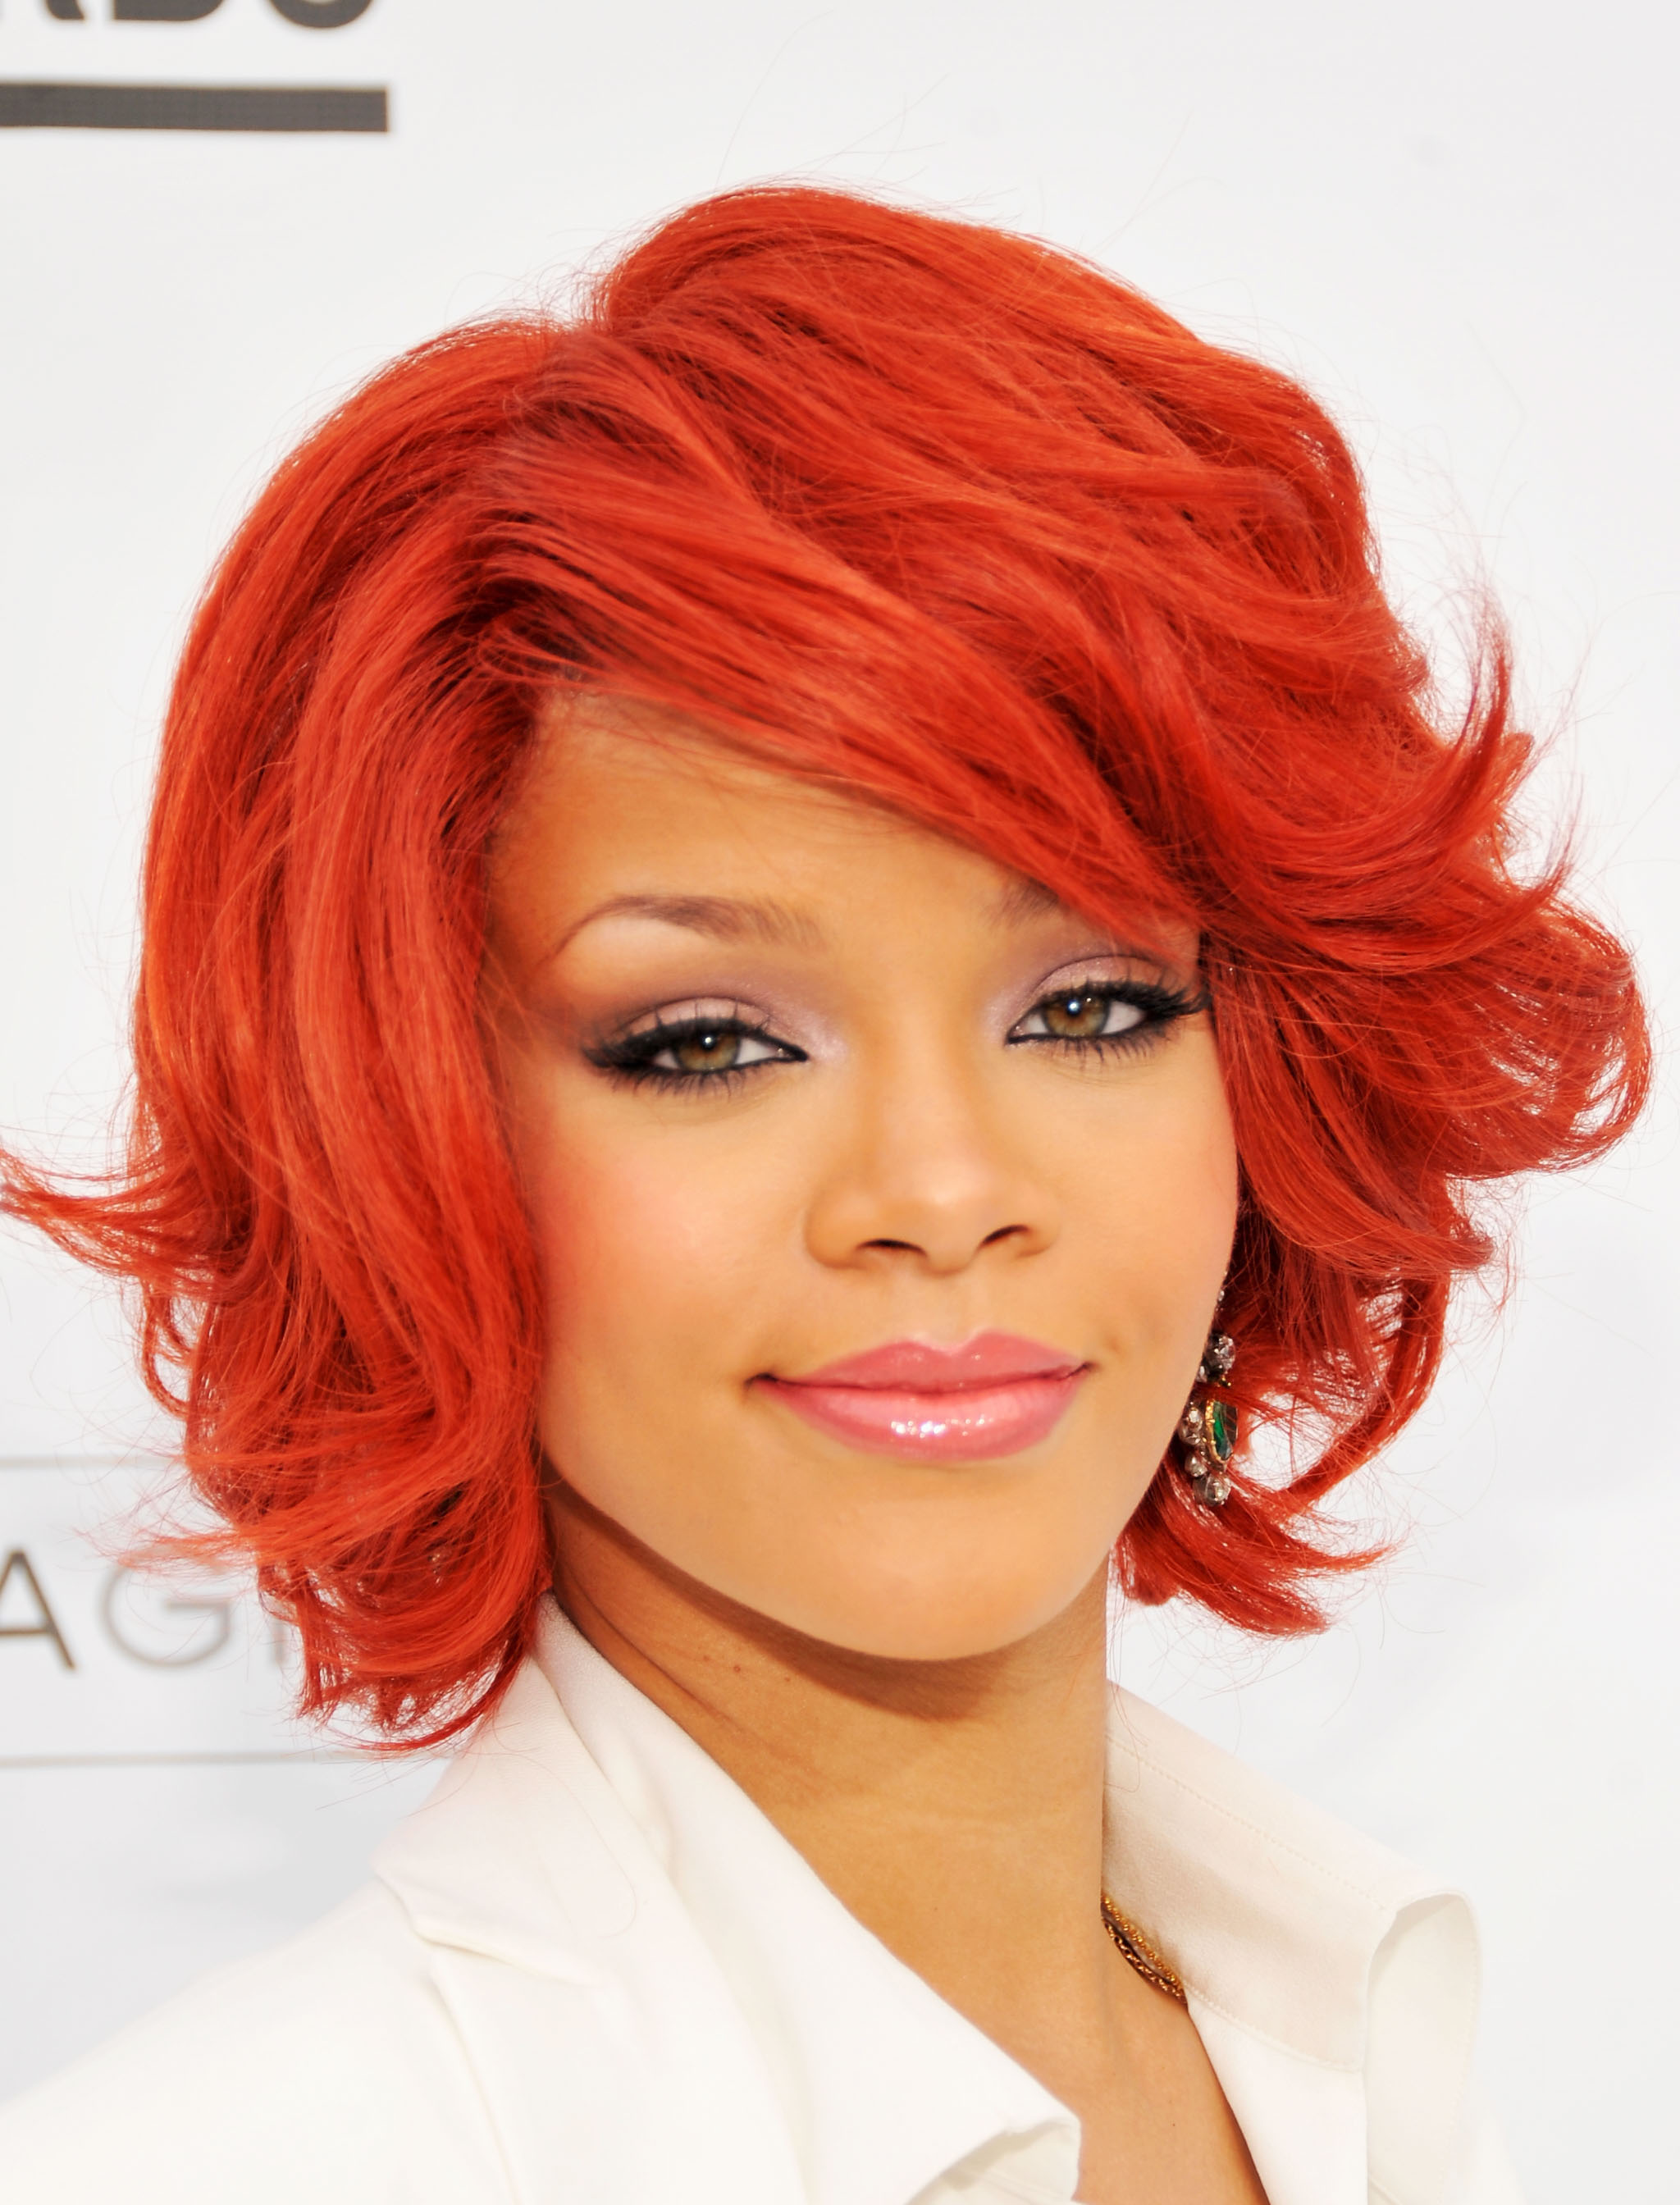 rihanna hair style rihanna photo 2048 of 7563 pics wallpaper photo 381250 8903